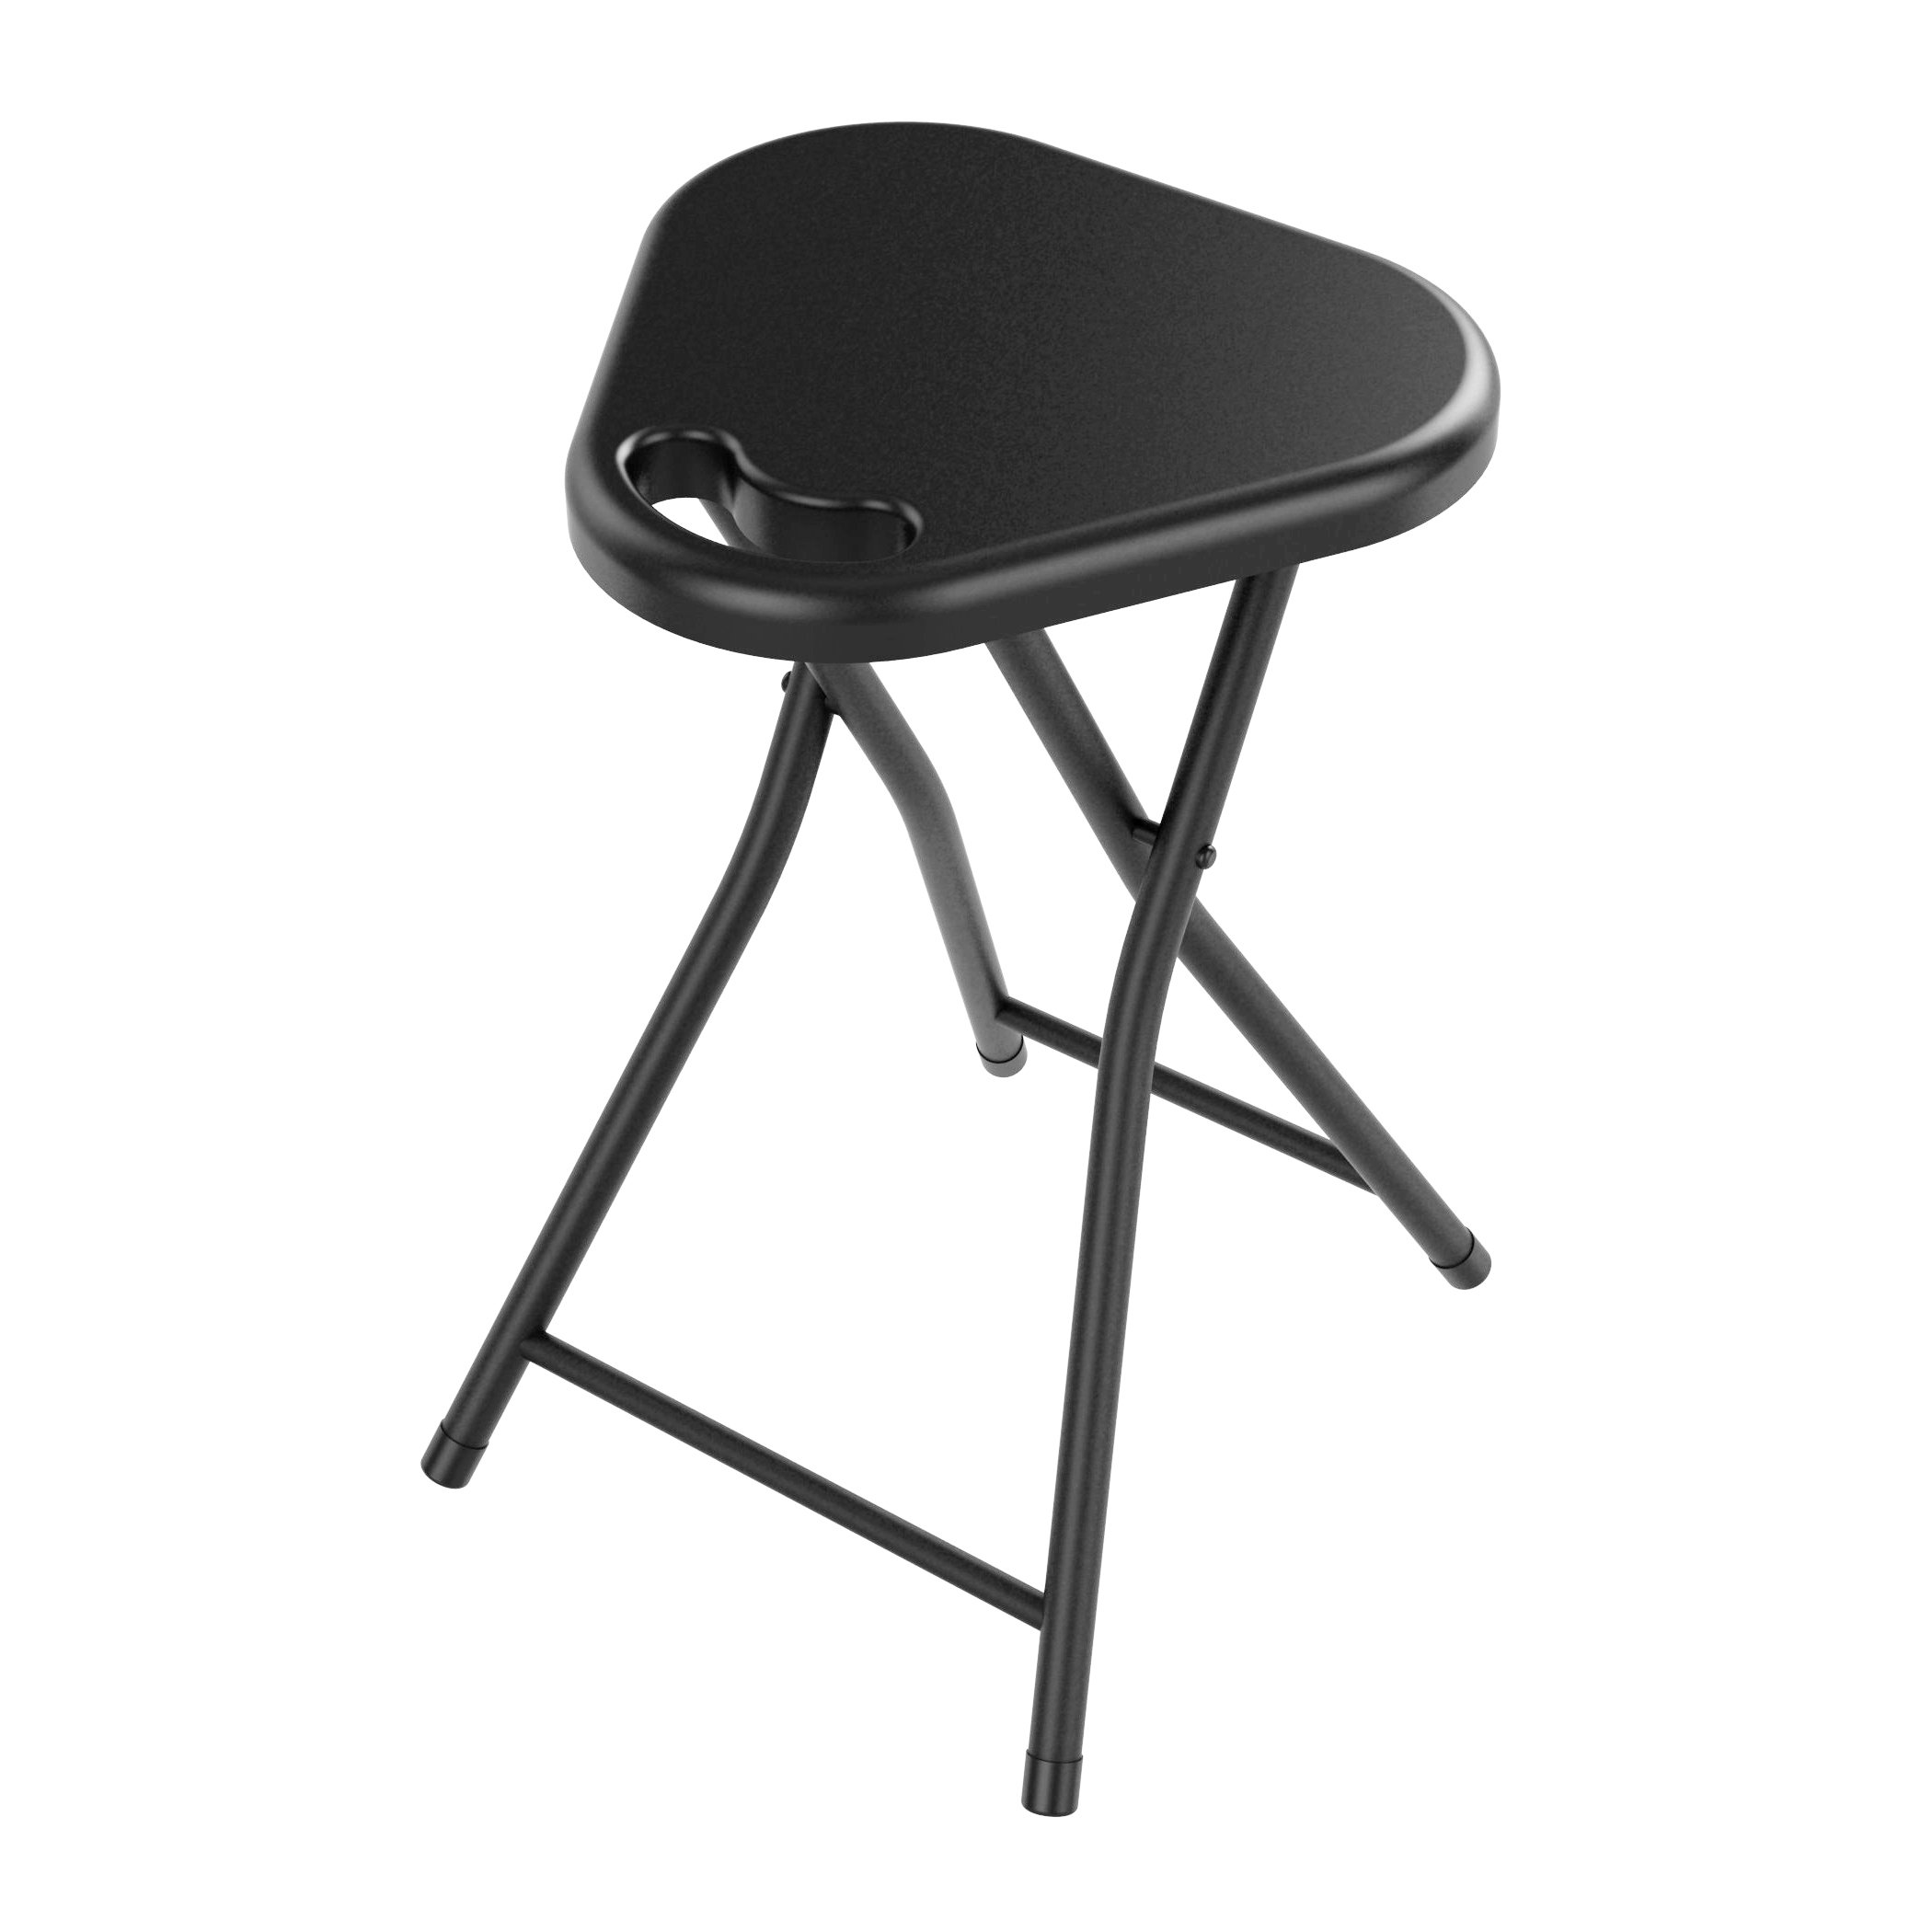 Atlantic Folding Stool with Handle, Black (4-Pack)